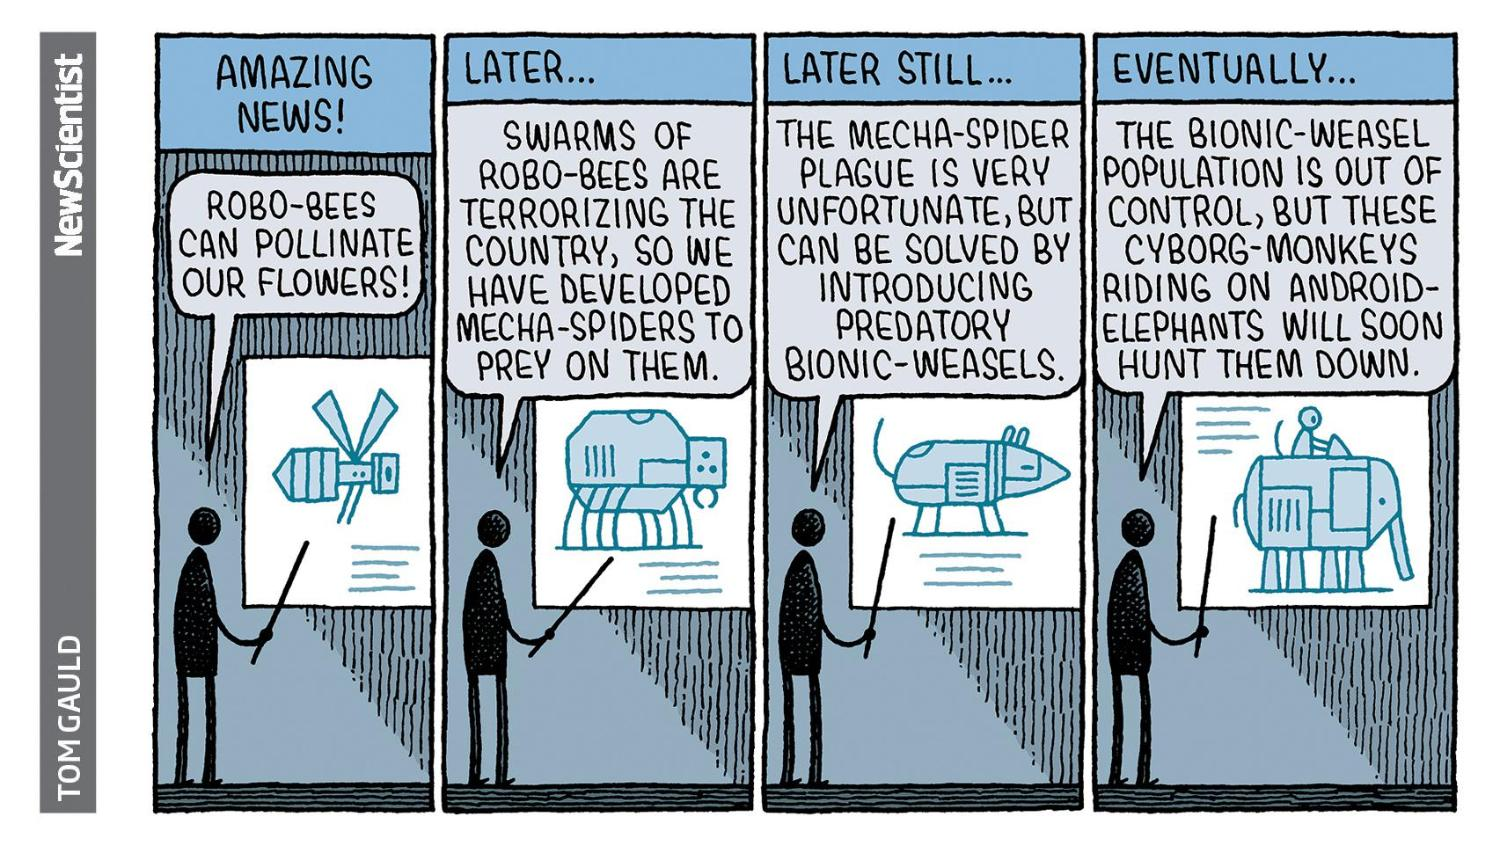 Don't worry, we've got this...  ��️ @tomgauld https://t.co/JPVY0NheCi